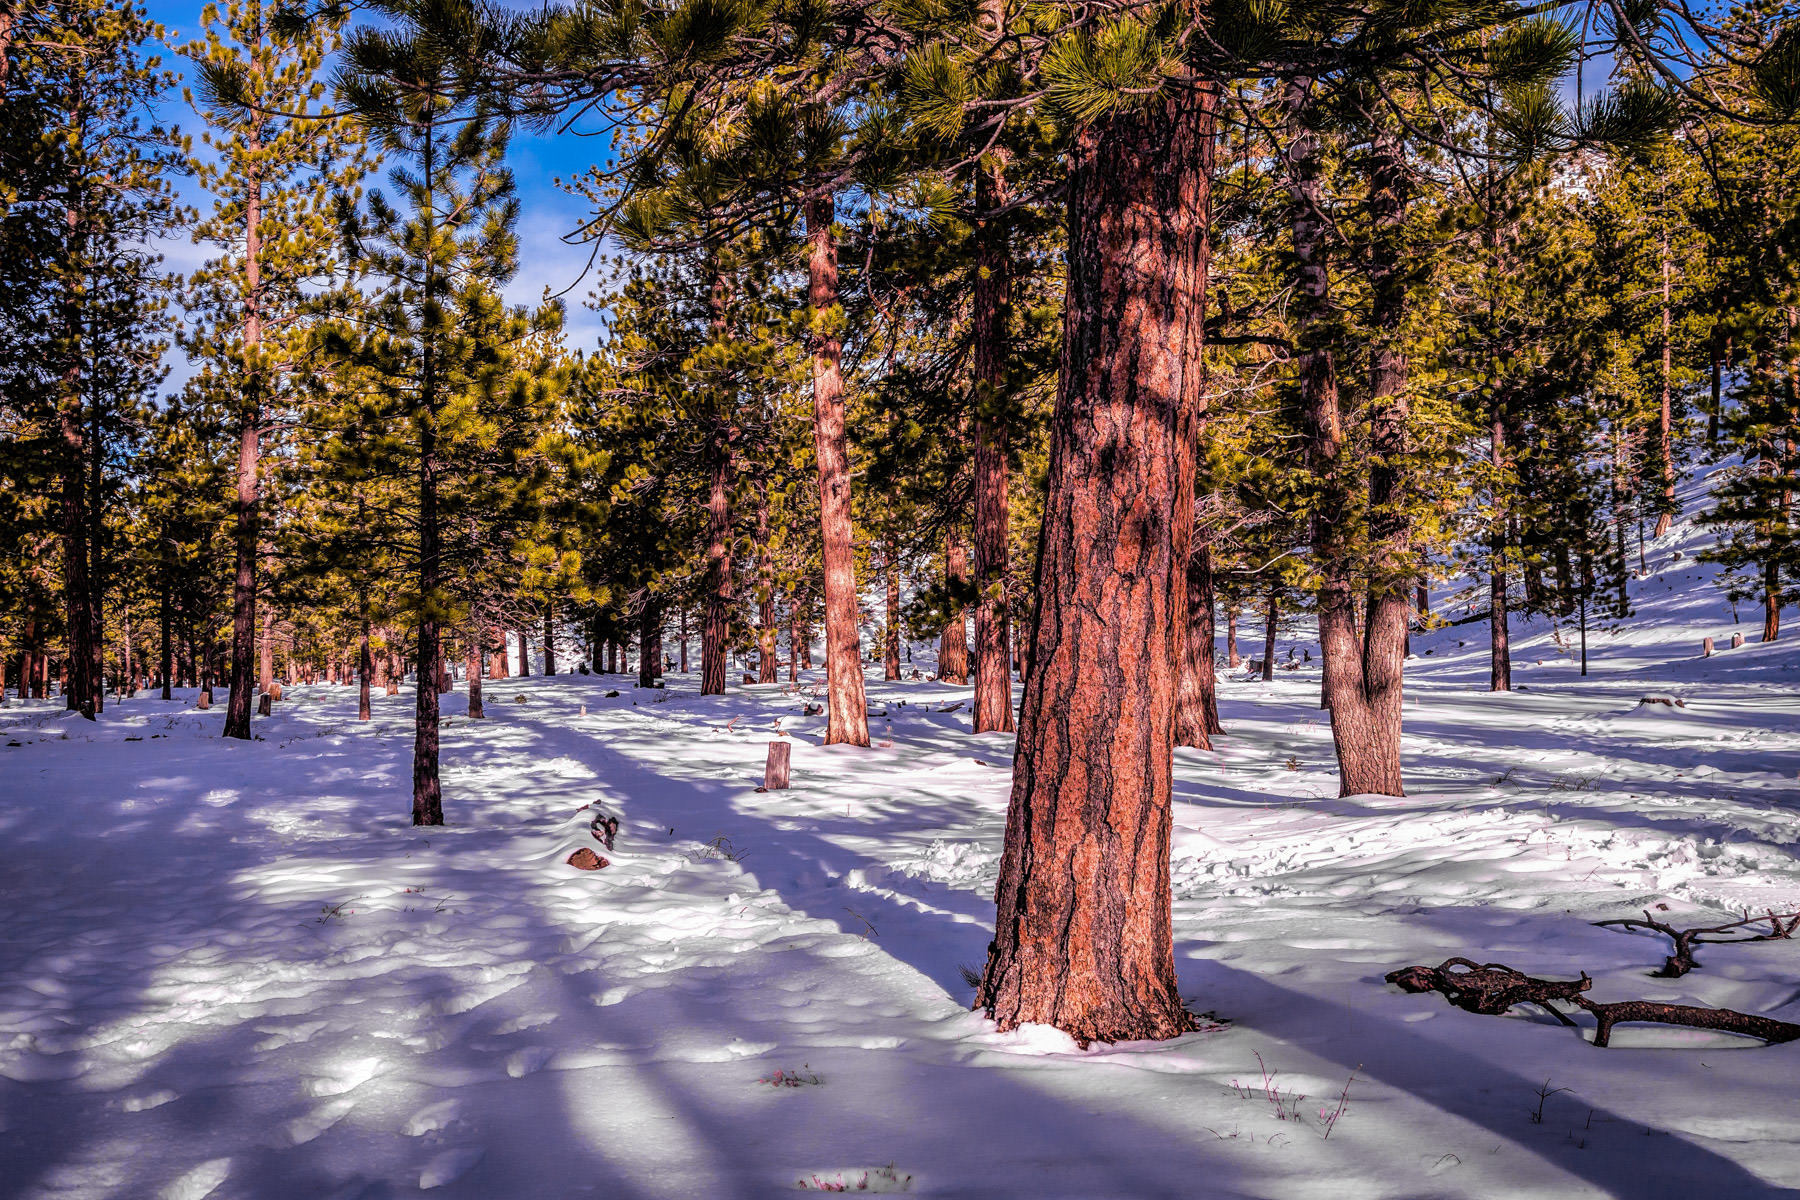 mount charleston snowfield